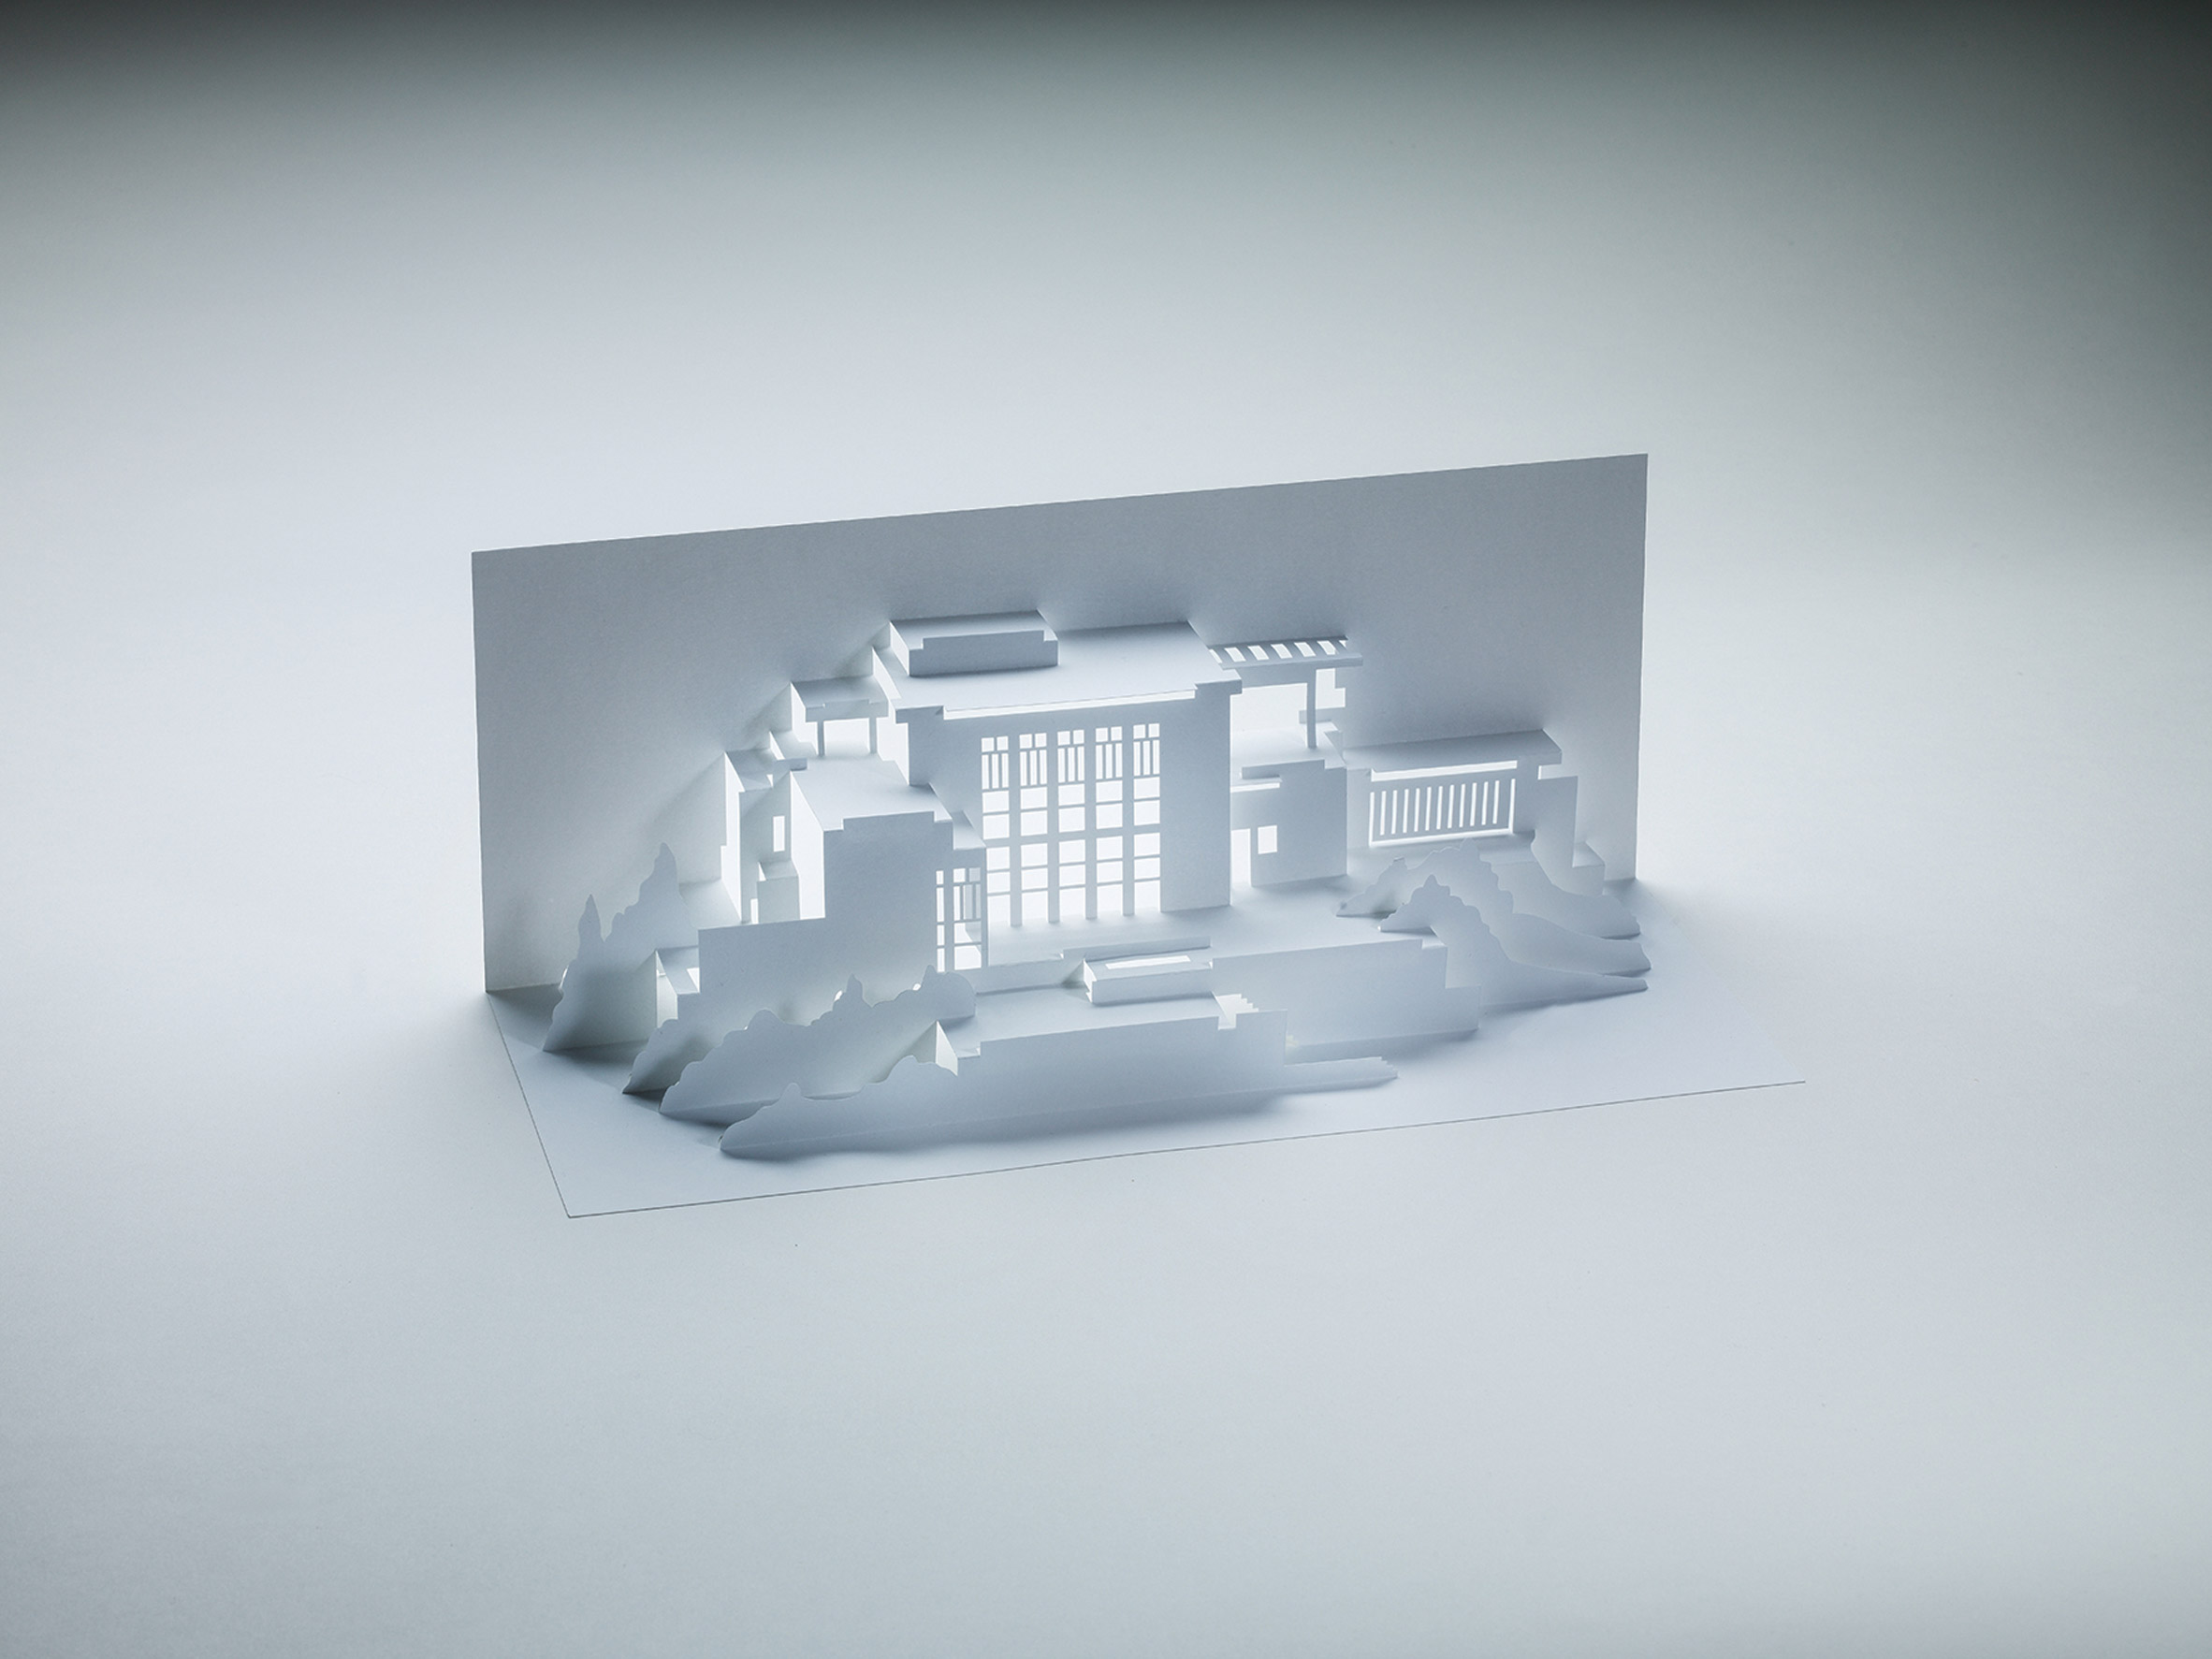 Competition: win a book exploring Frank Lloyd Wright's architecture through the art of kirigami